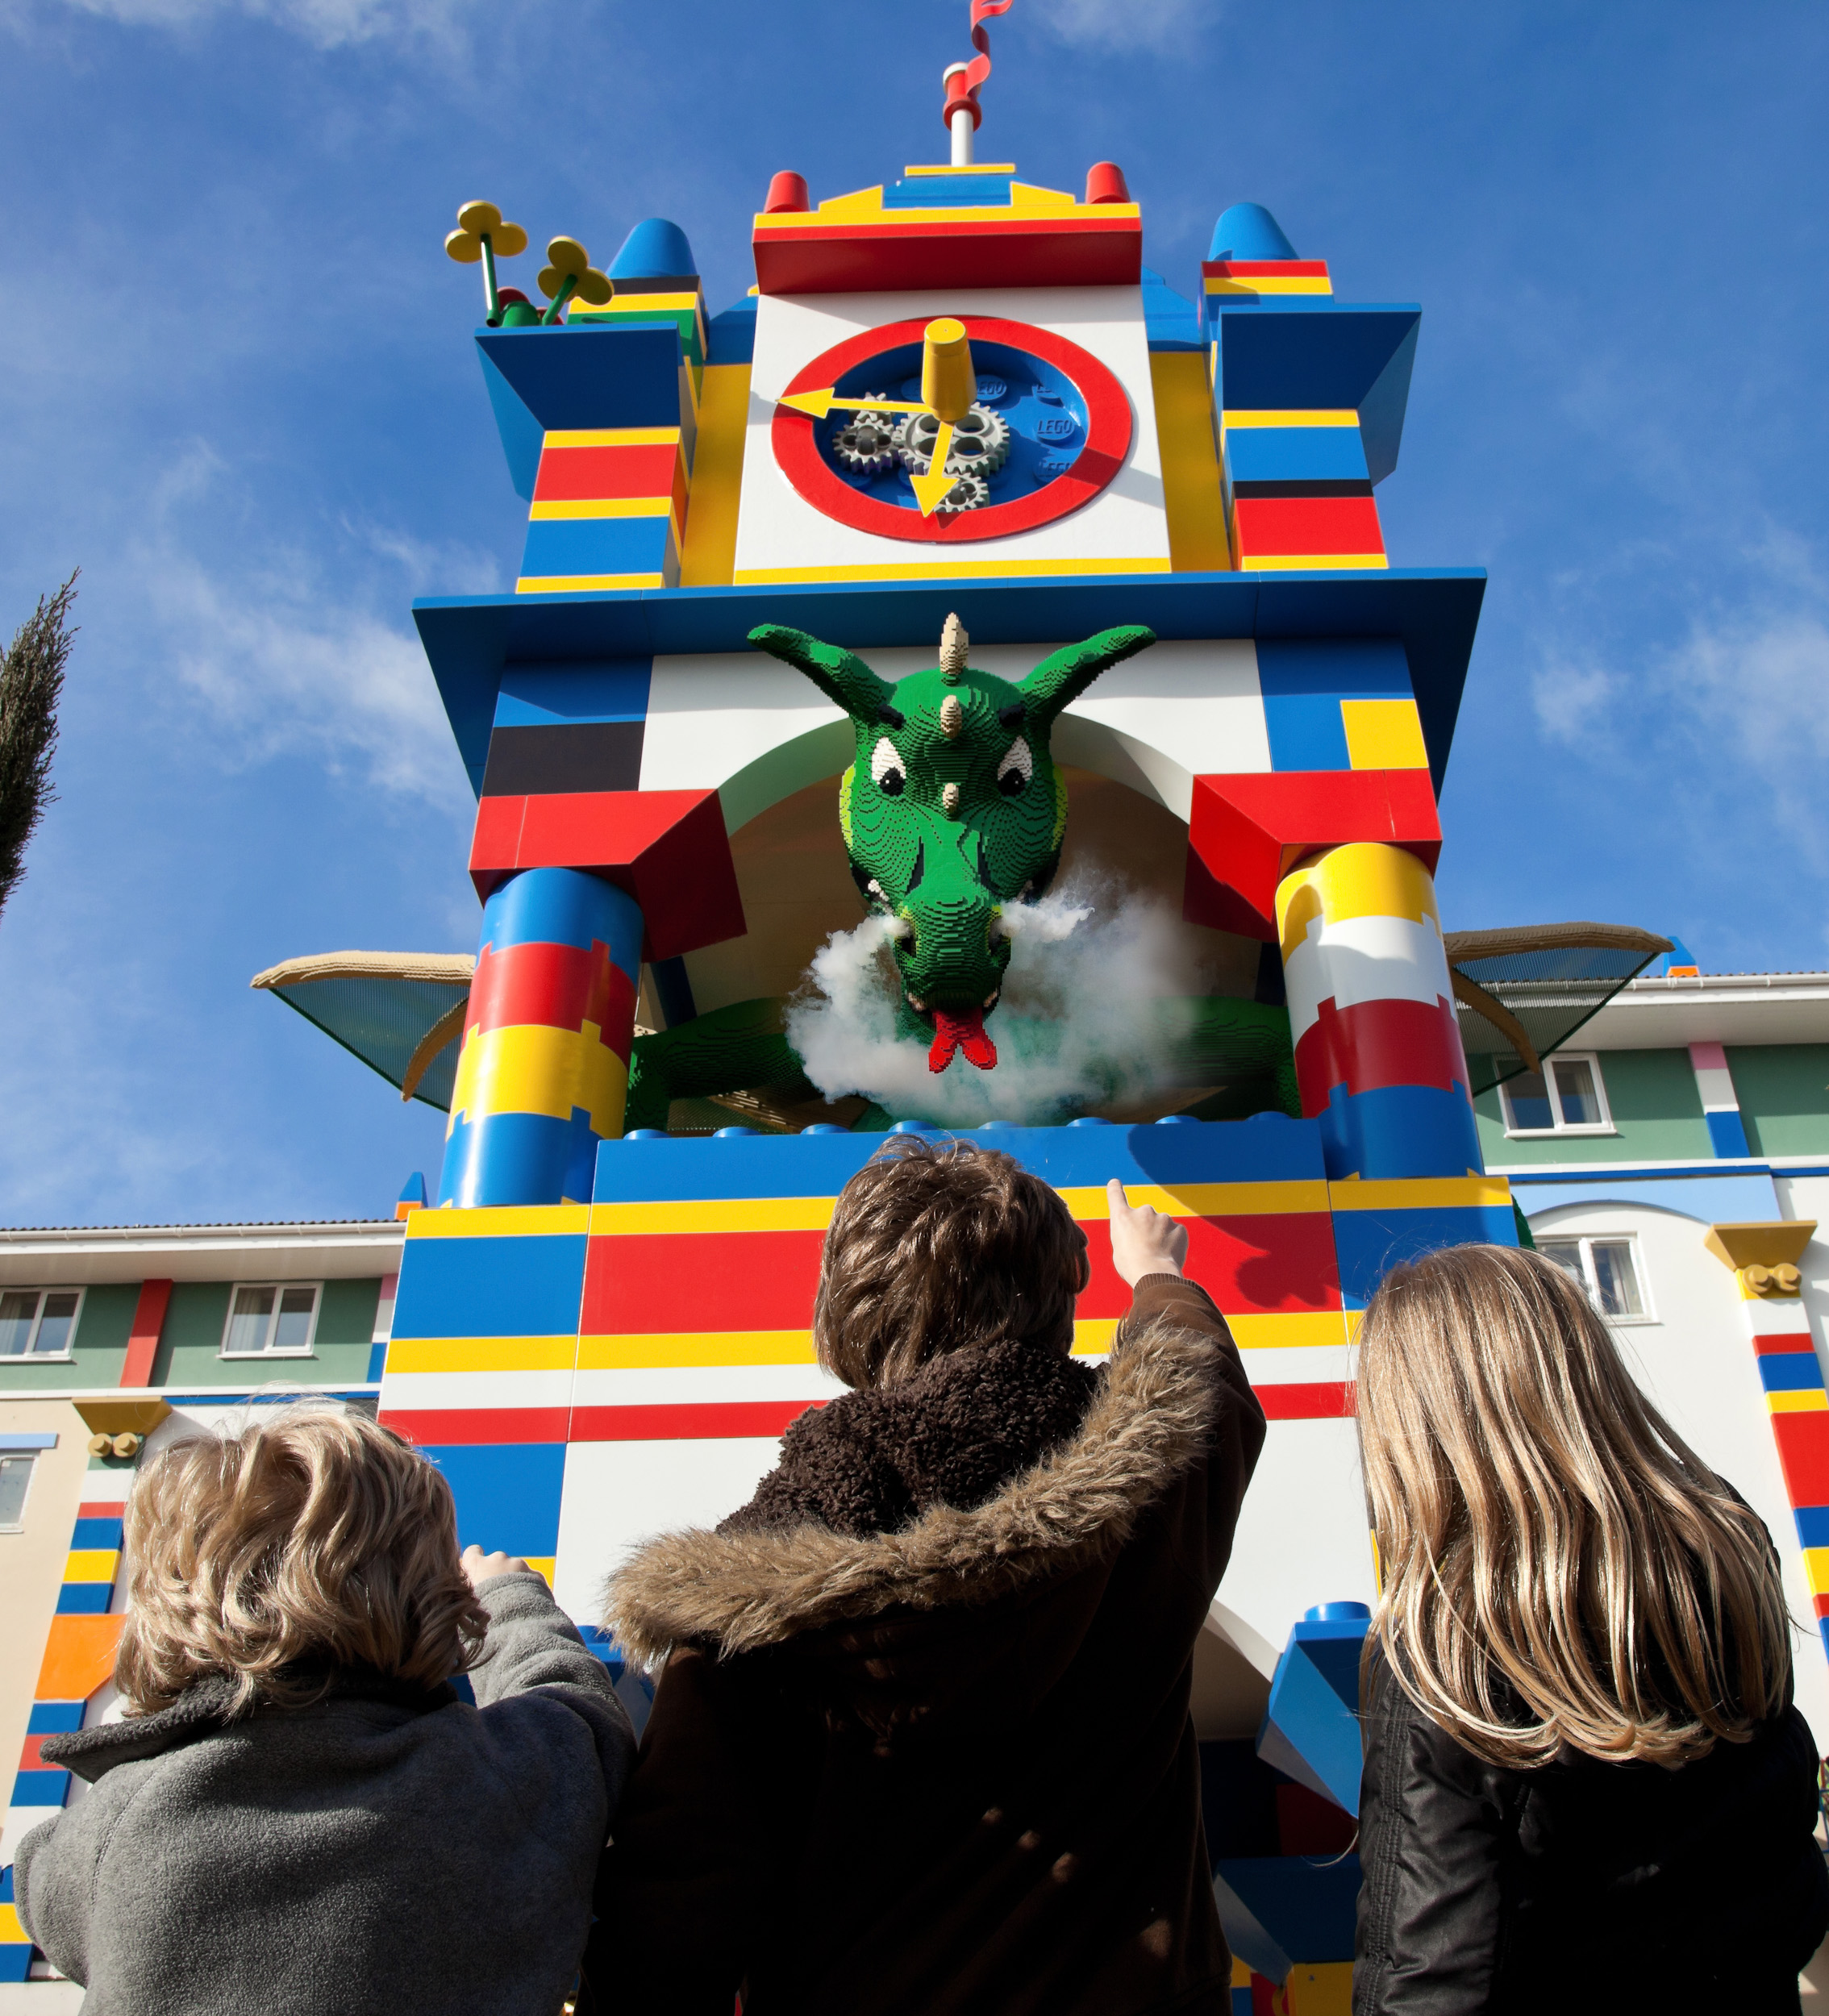 The LEGOLAND Resort Hotel